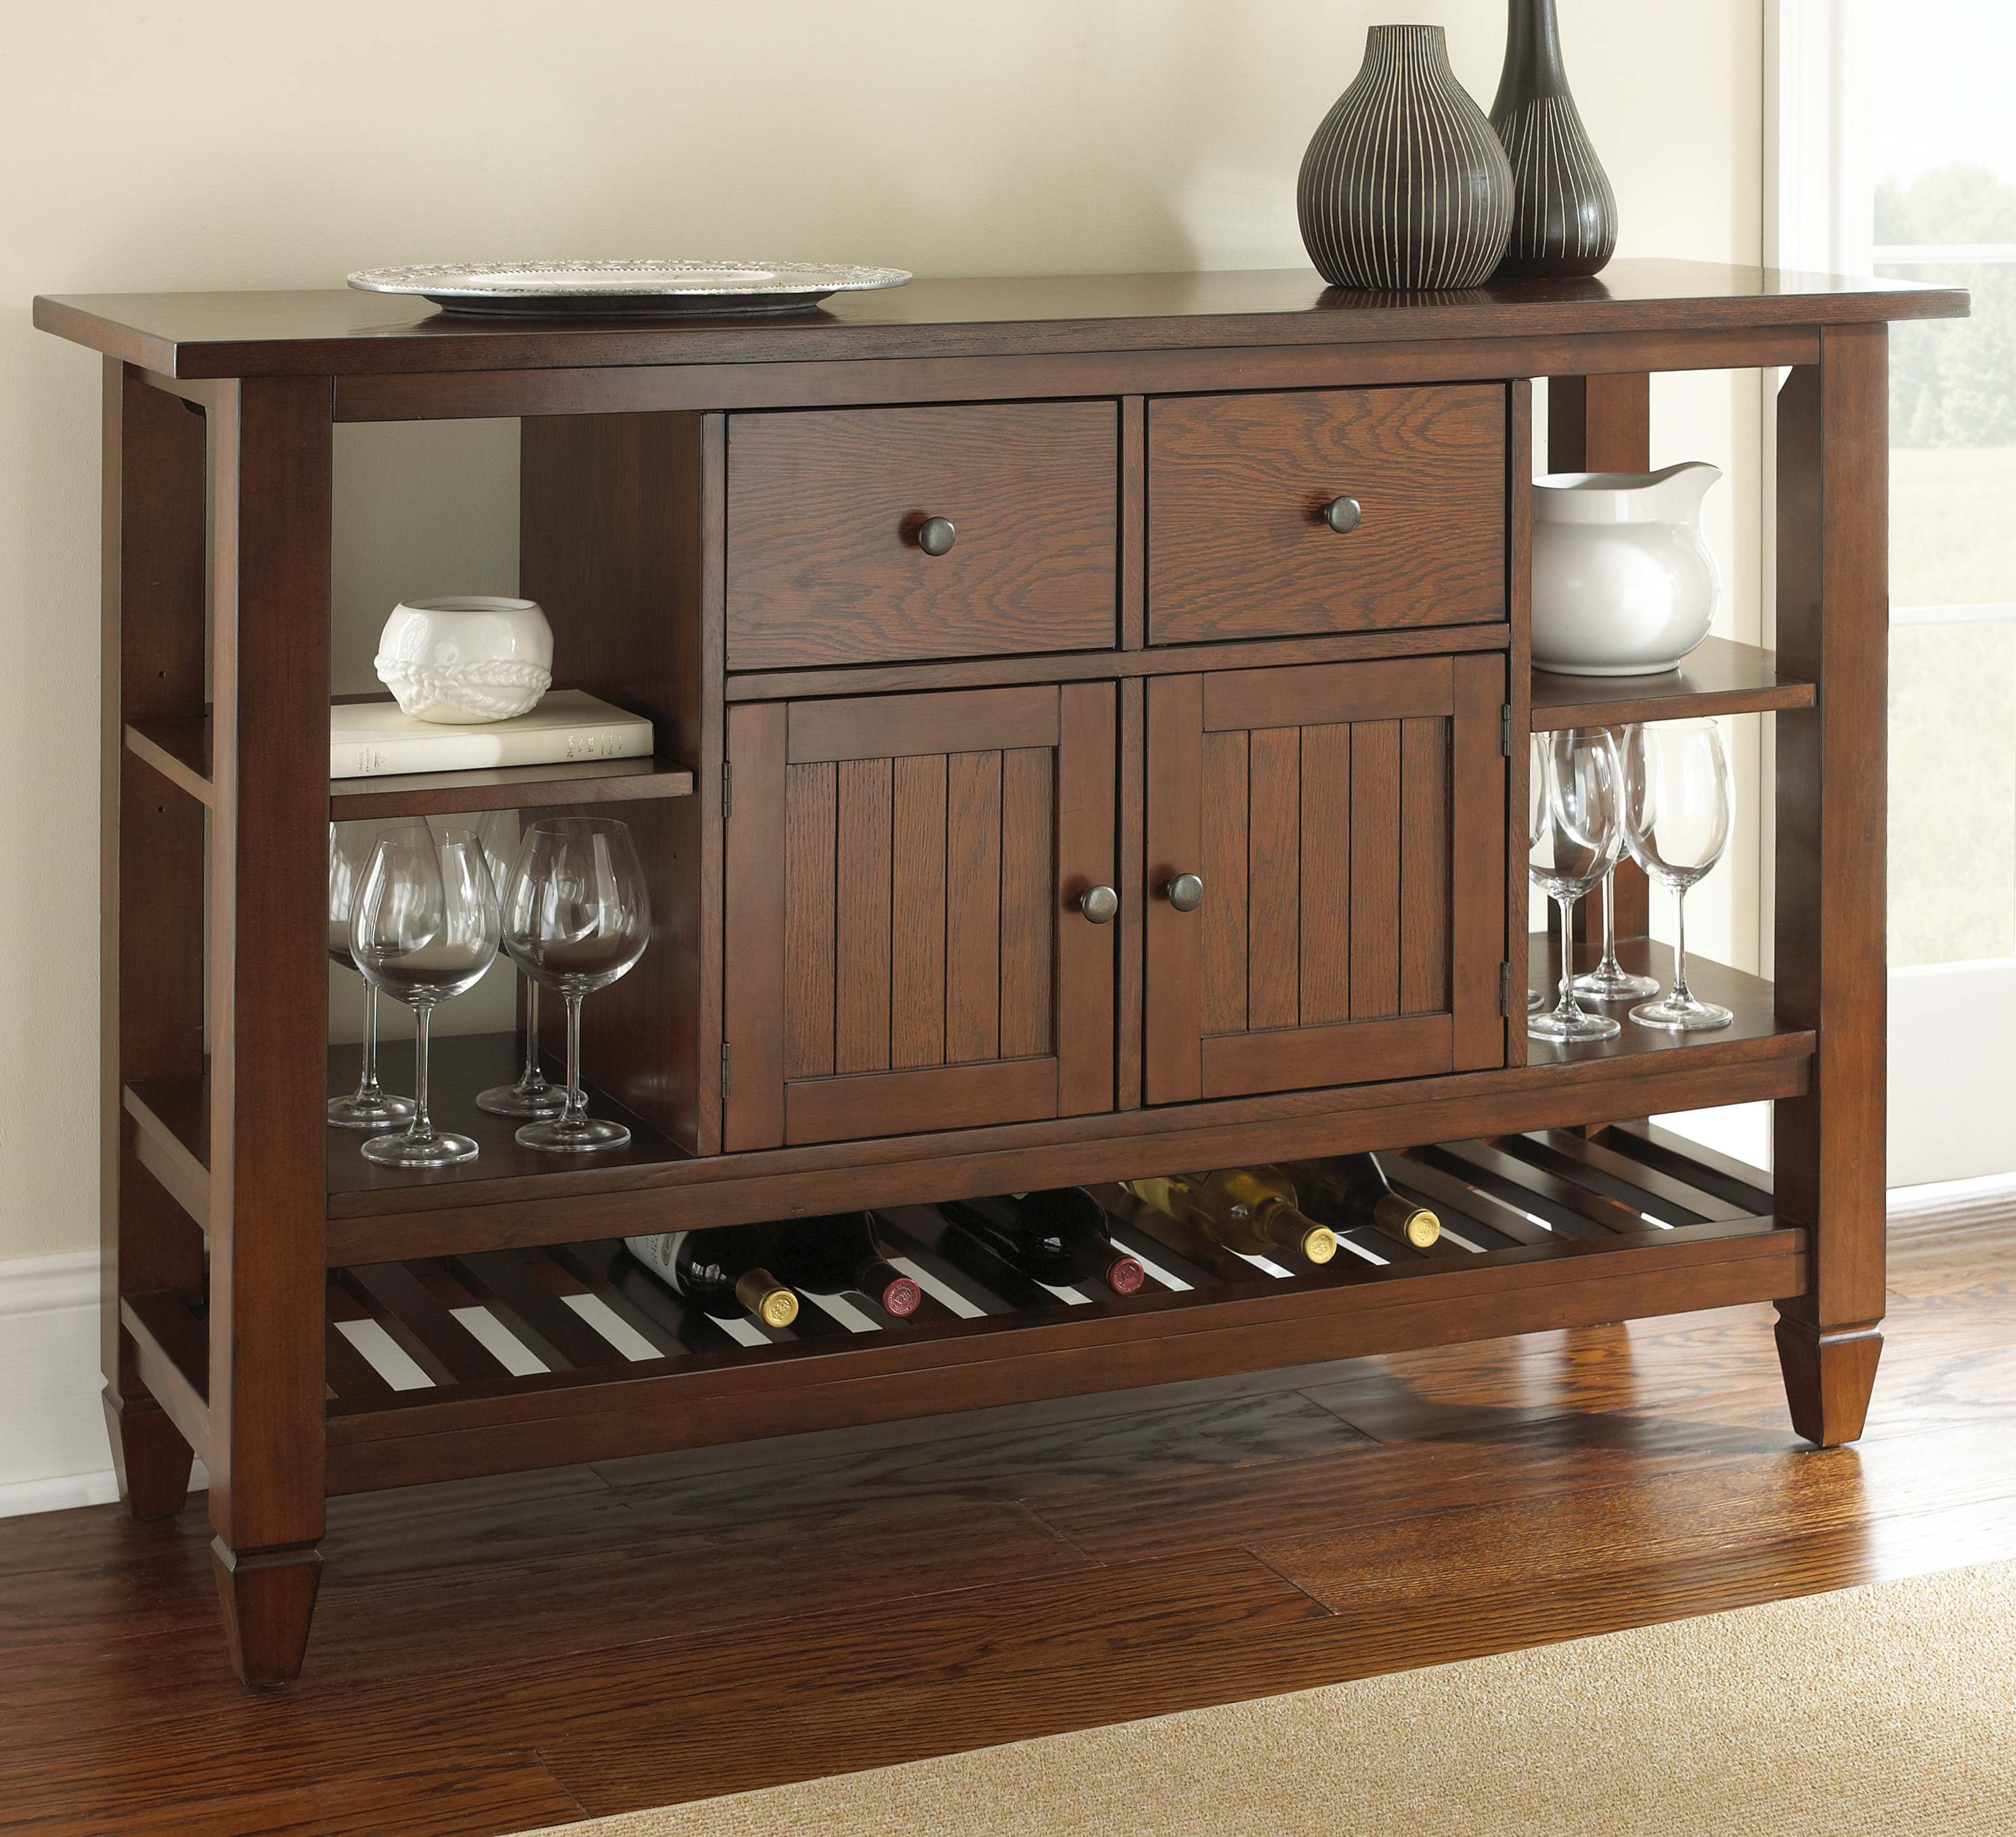 Wayfair Throughout North York Sideboards (View 12 of 20)